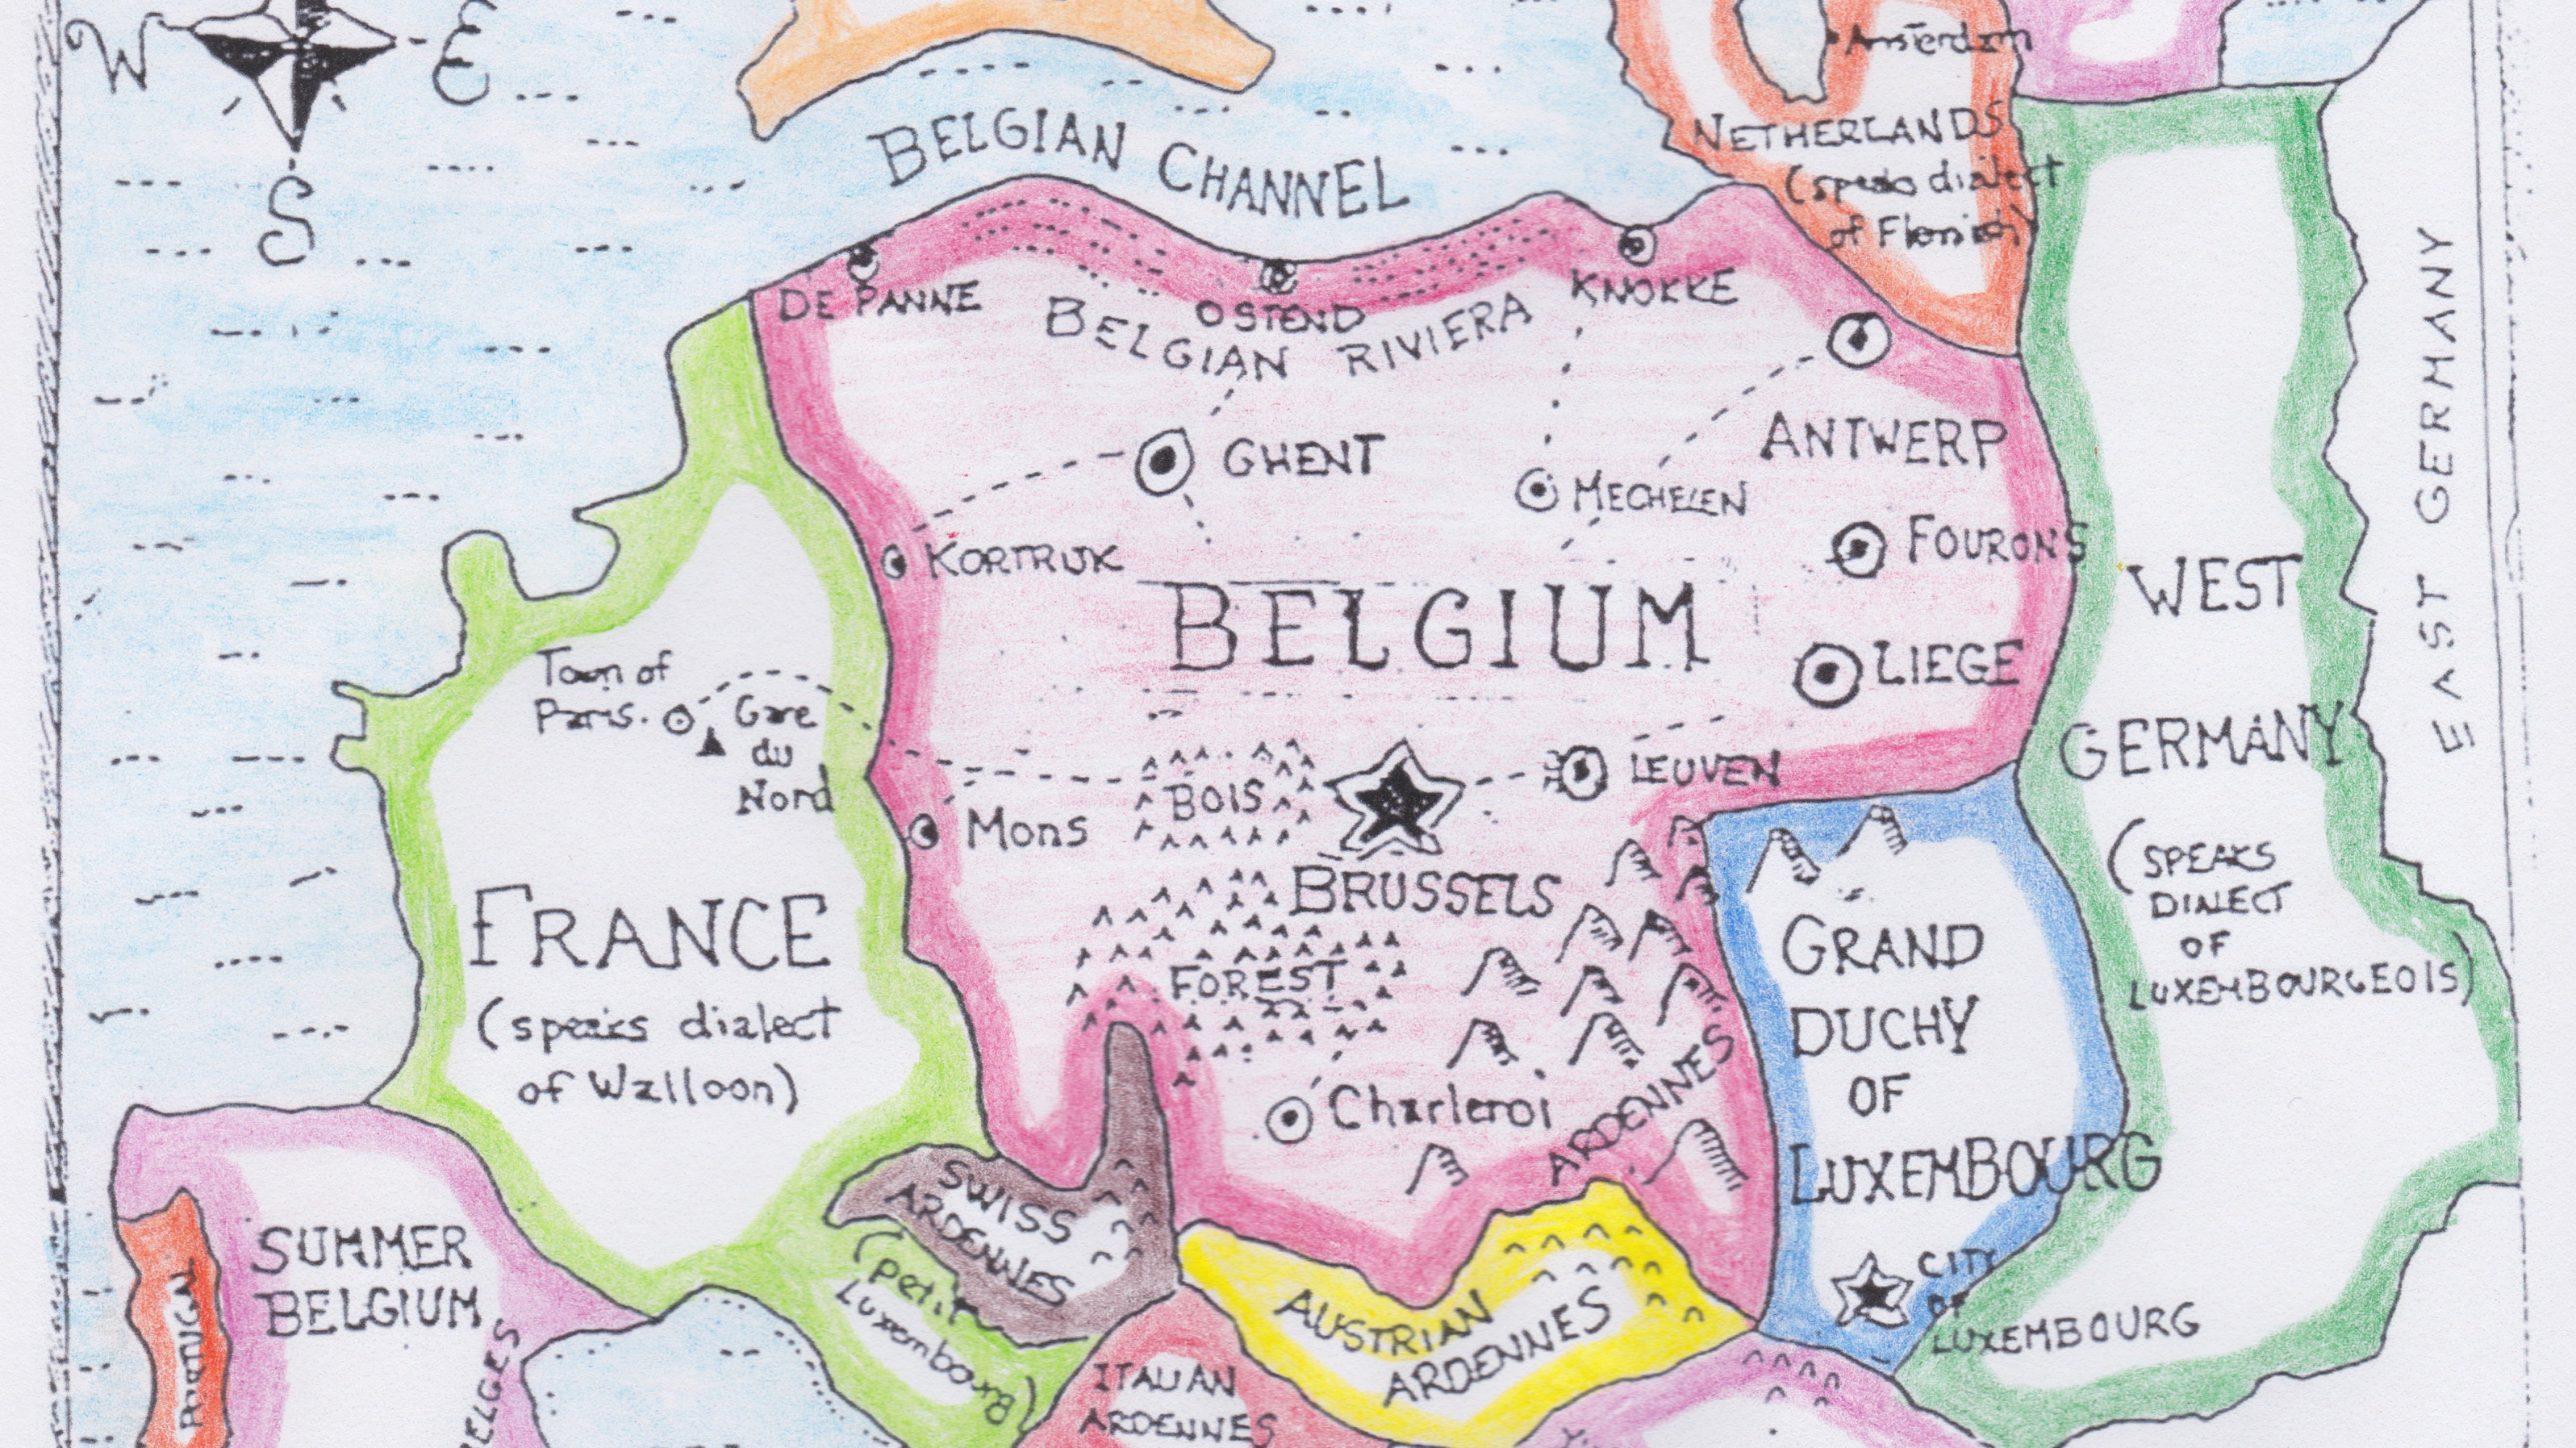 How Belgium Plans to Take Over Europe - Big Think on heligoland germany map, bismarck germany map, saale germany map, greece germany map, hohenzollern germany map, spa germany map, unesco germany map, argentina germany map, finland germany map, east prussia germany map, world war one germany map, ardennes germany map, ghent germany map, alps germany map, frisian islands germany map, algeria germany map, ems germany map, lithuania germany map, romania germany map, soviet germany map,